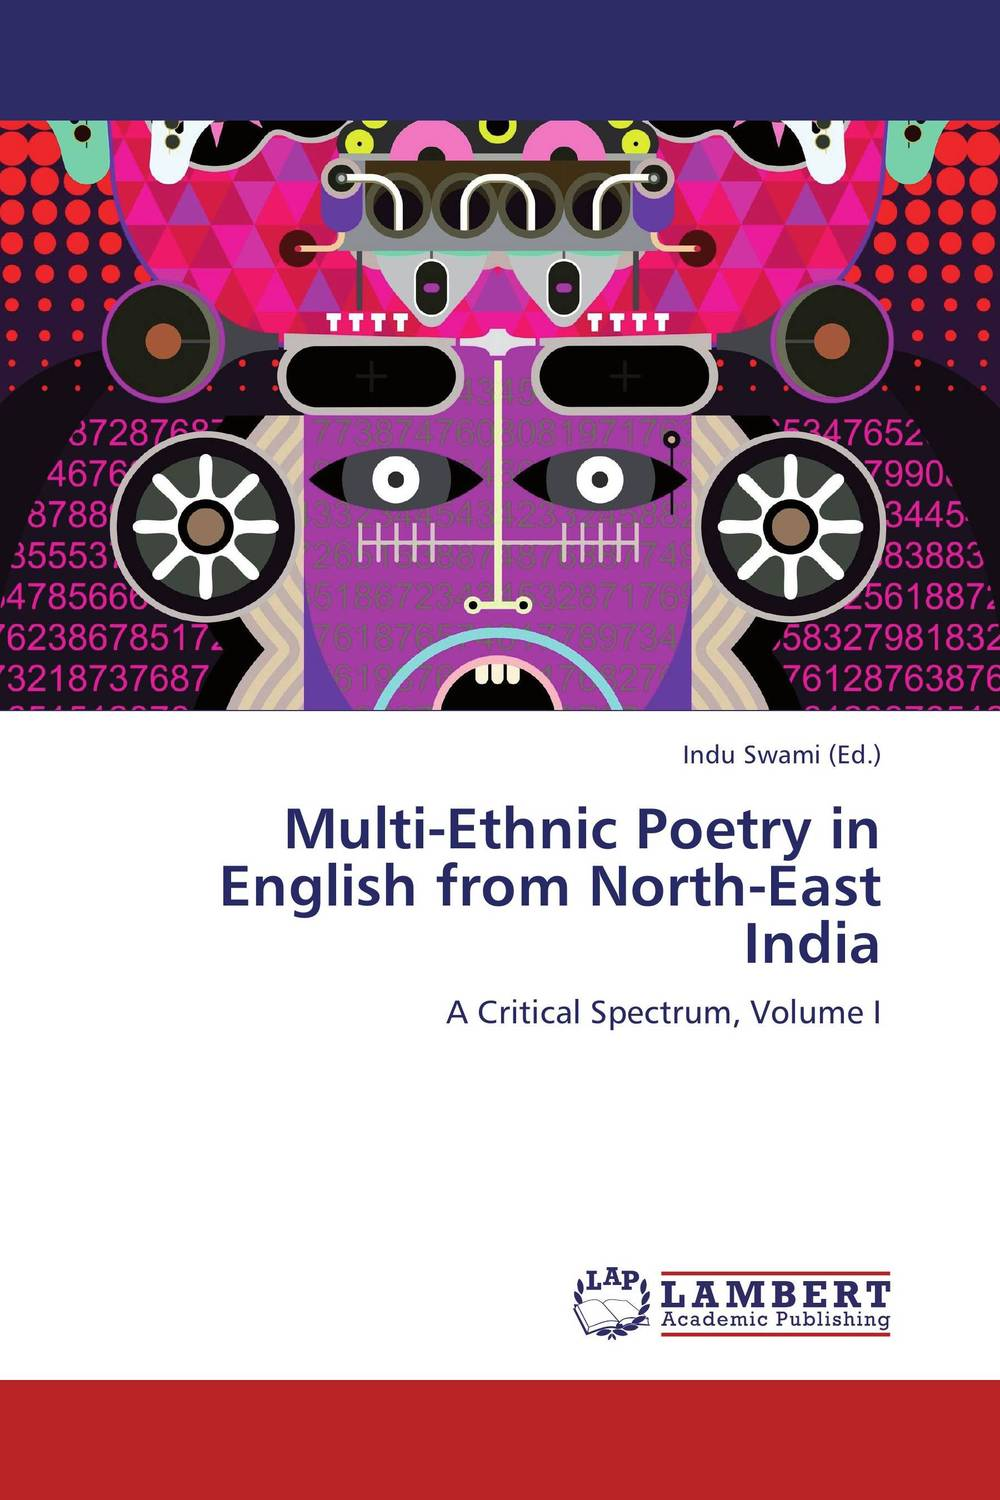 Multi-Ethnic Poetry in English from North-East India rise and spread of english in india